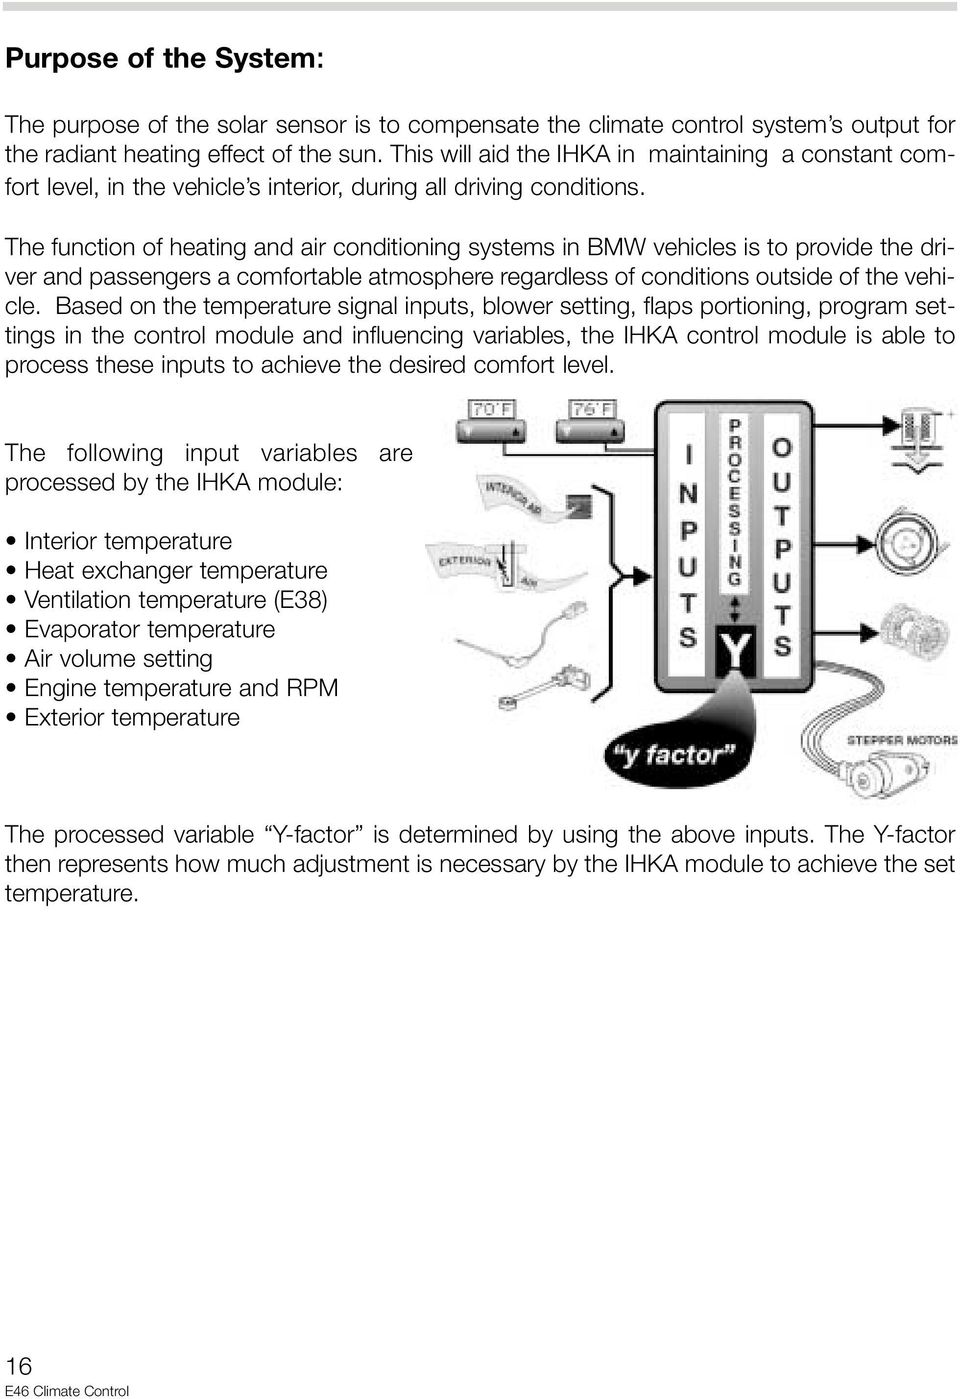 medium resolution of the function of heating and air conditioning systems in bmw vehicles is to provide the driver